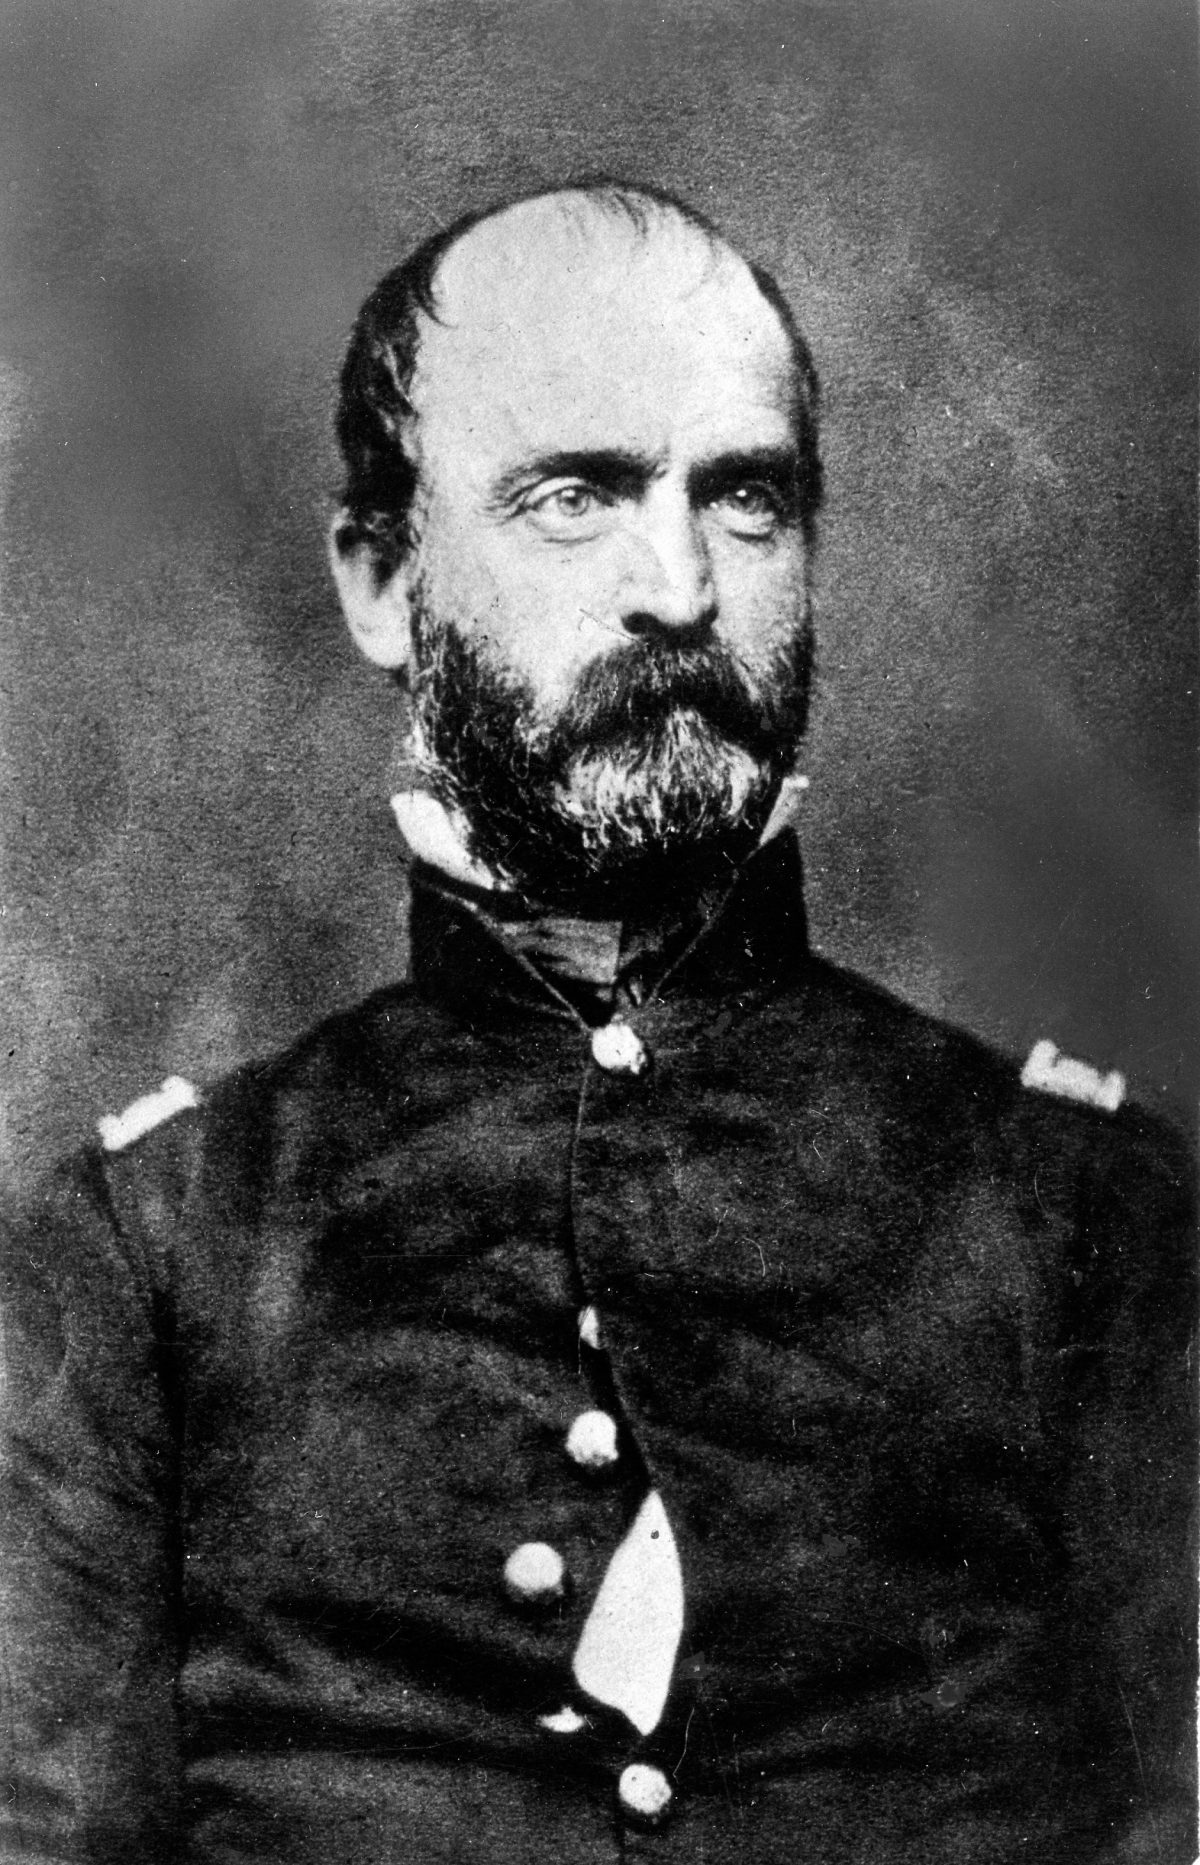 General Lewis Addison Armistead